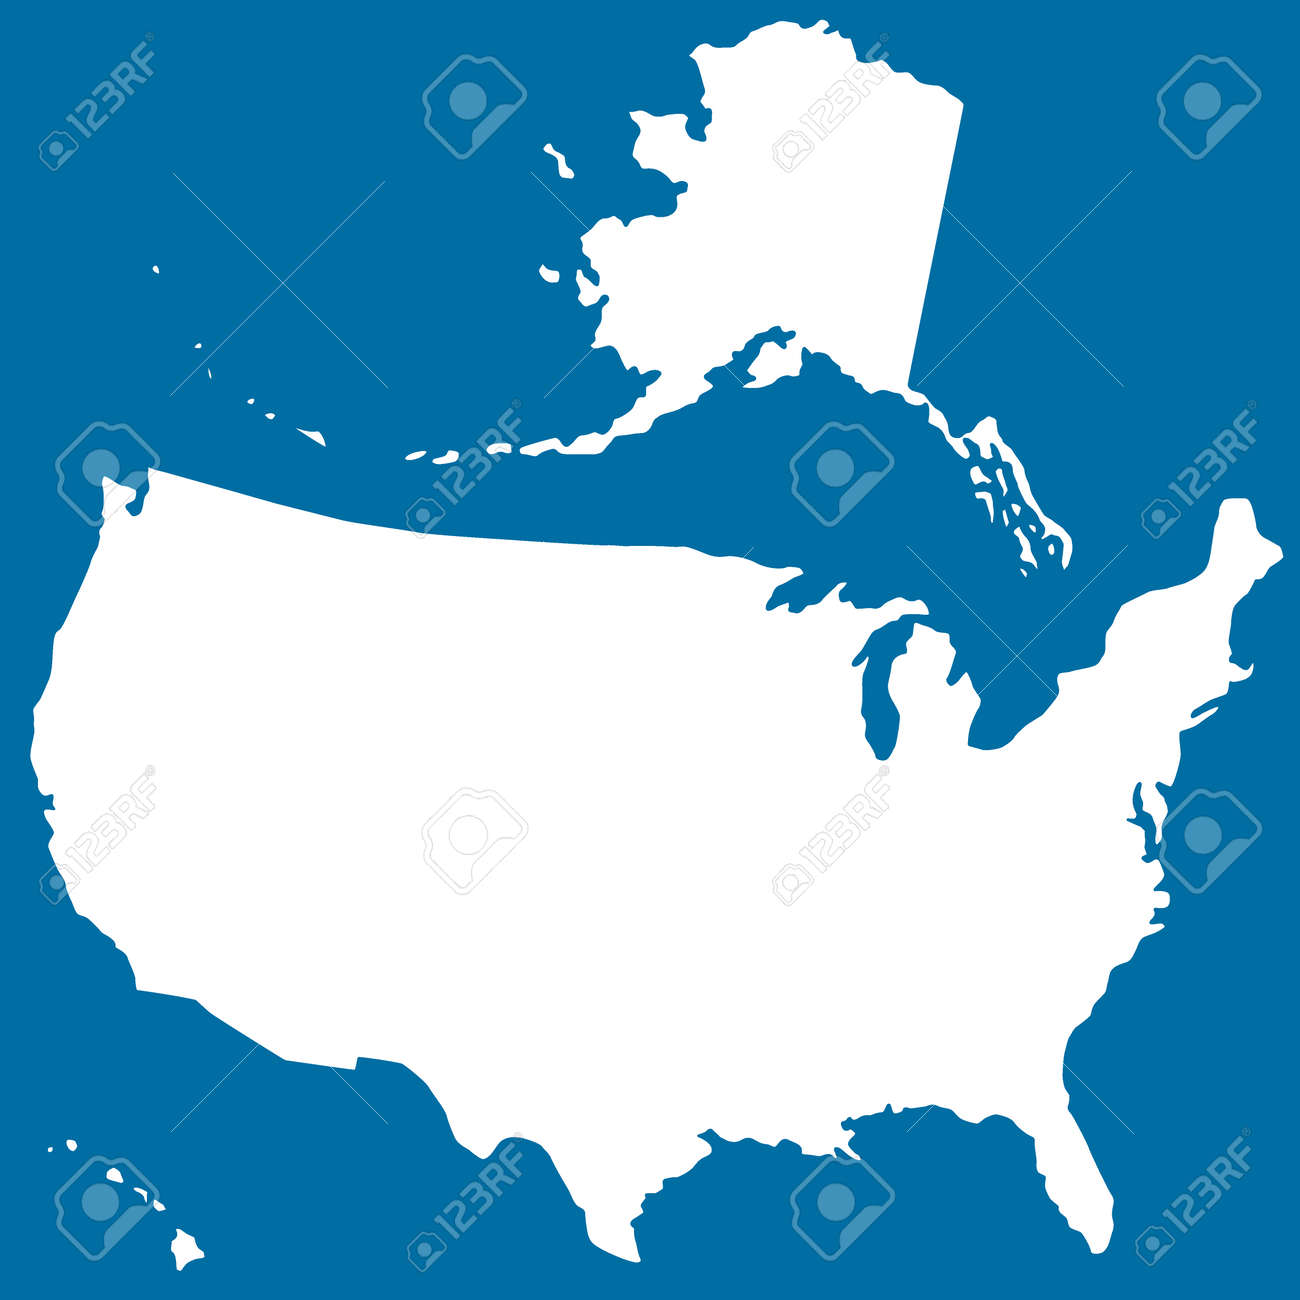 Cutout Silhouette Map Of The USA Source Of Map Httpwwwlib - Us map silhouette